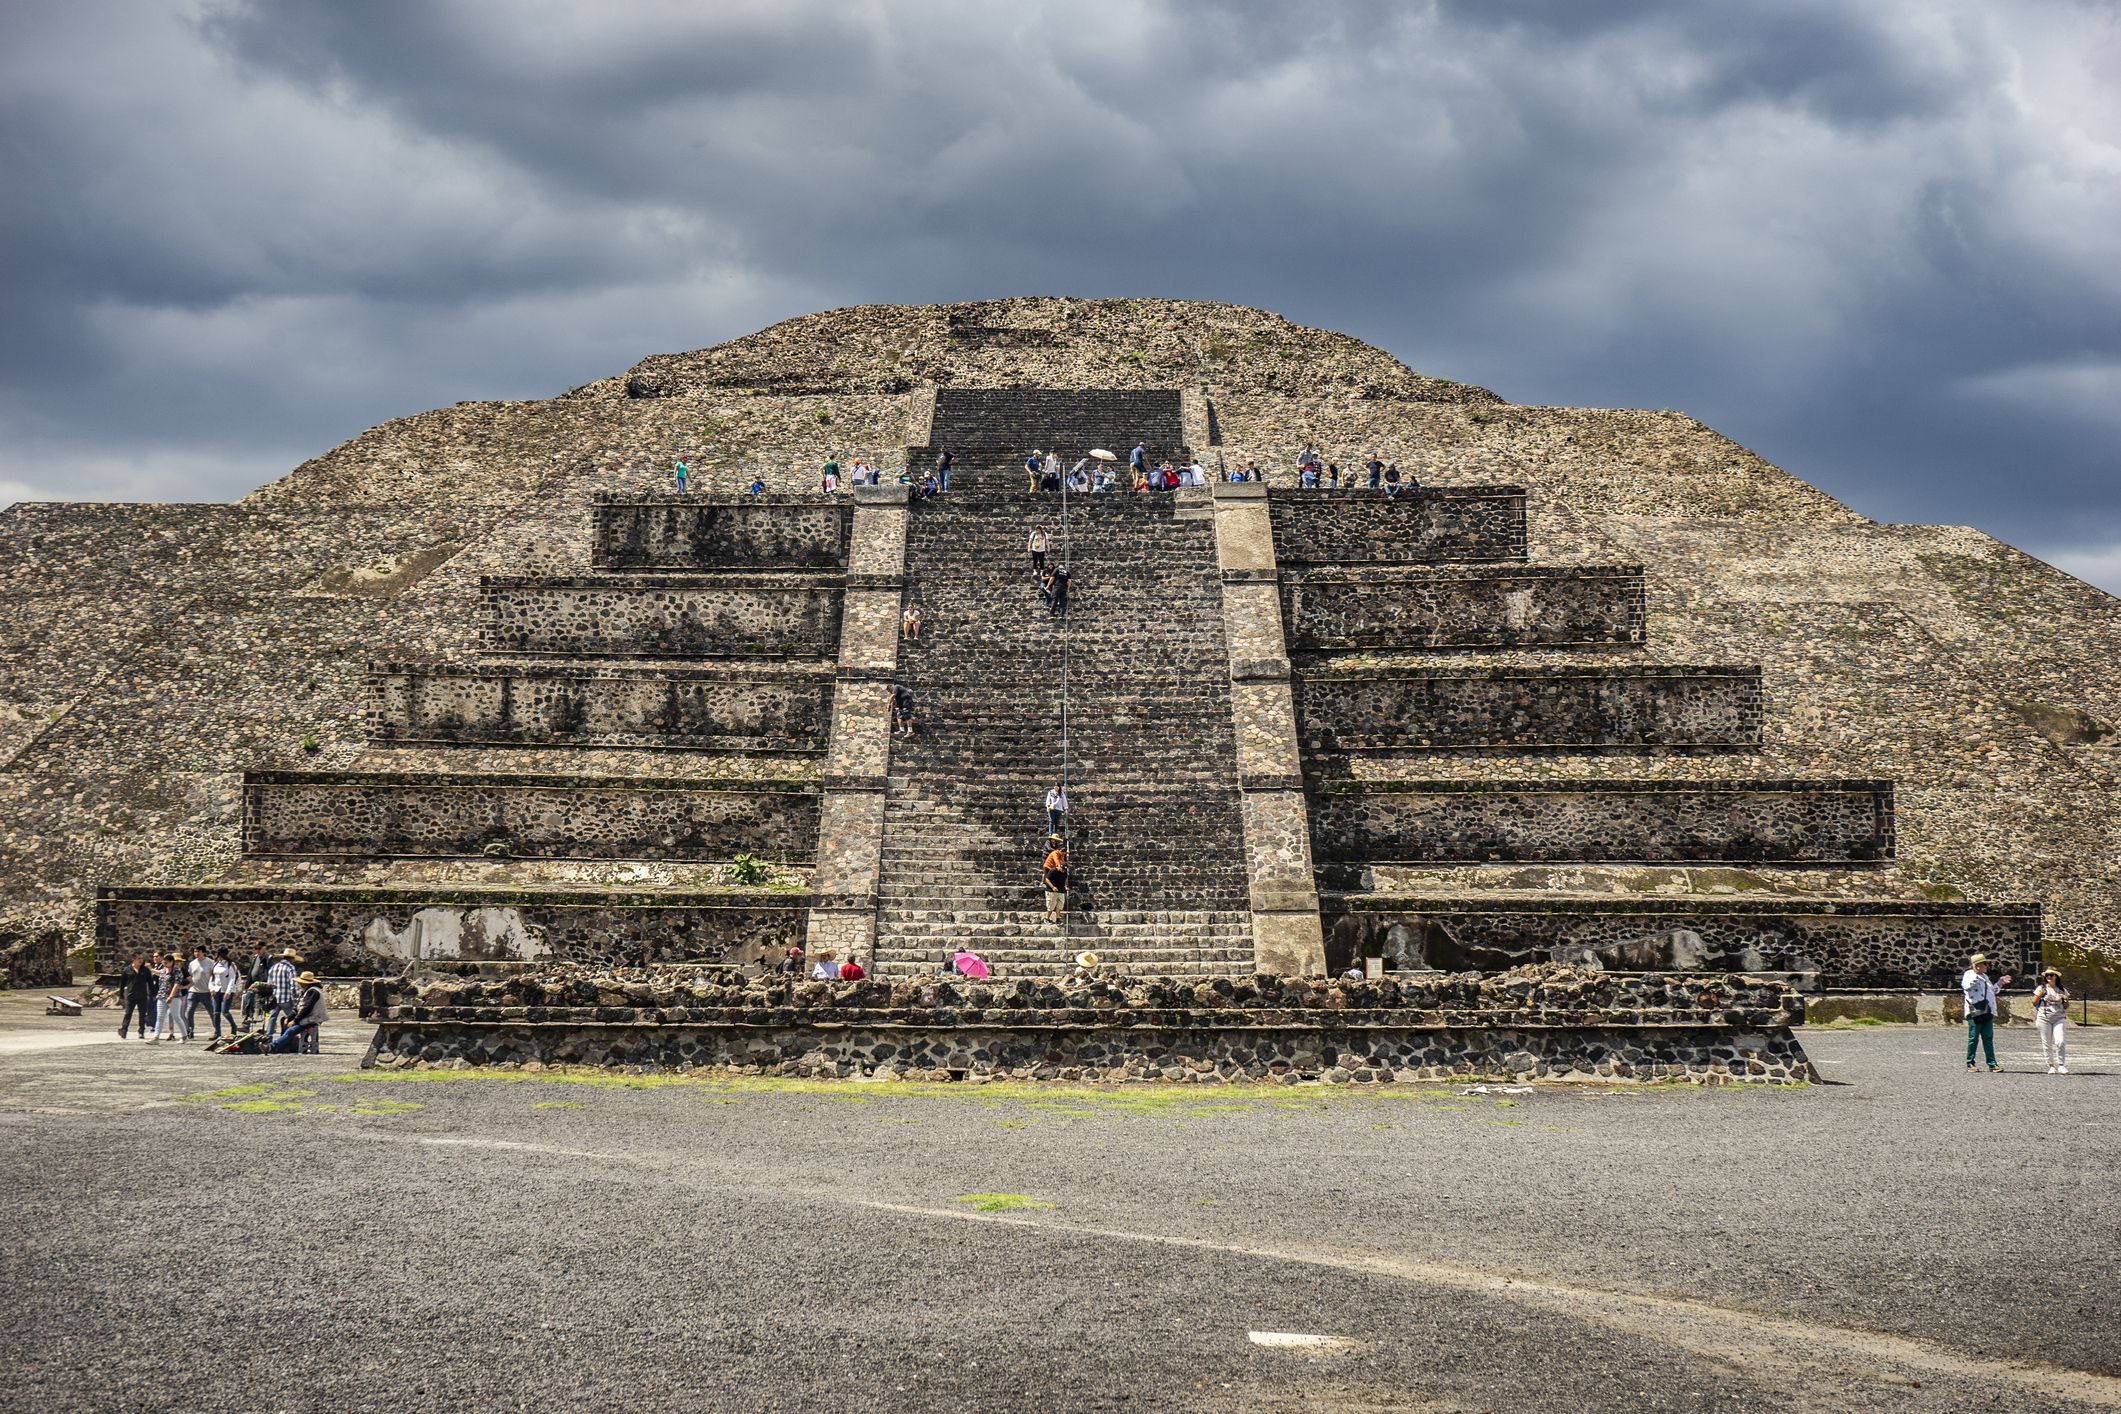 Teotihuacan's Pyramid of the Moon